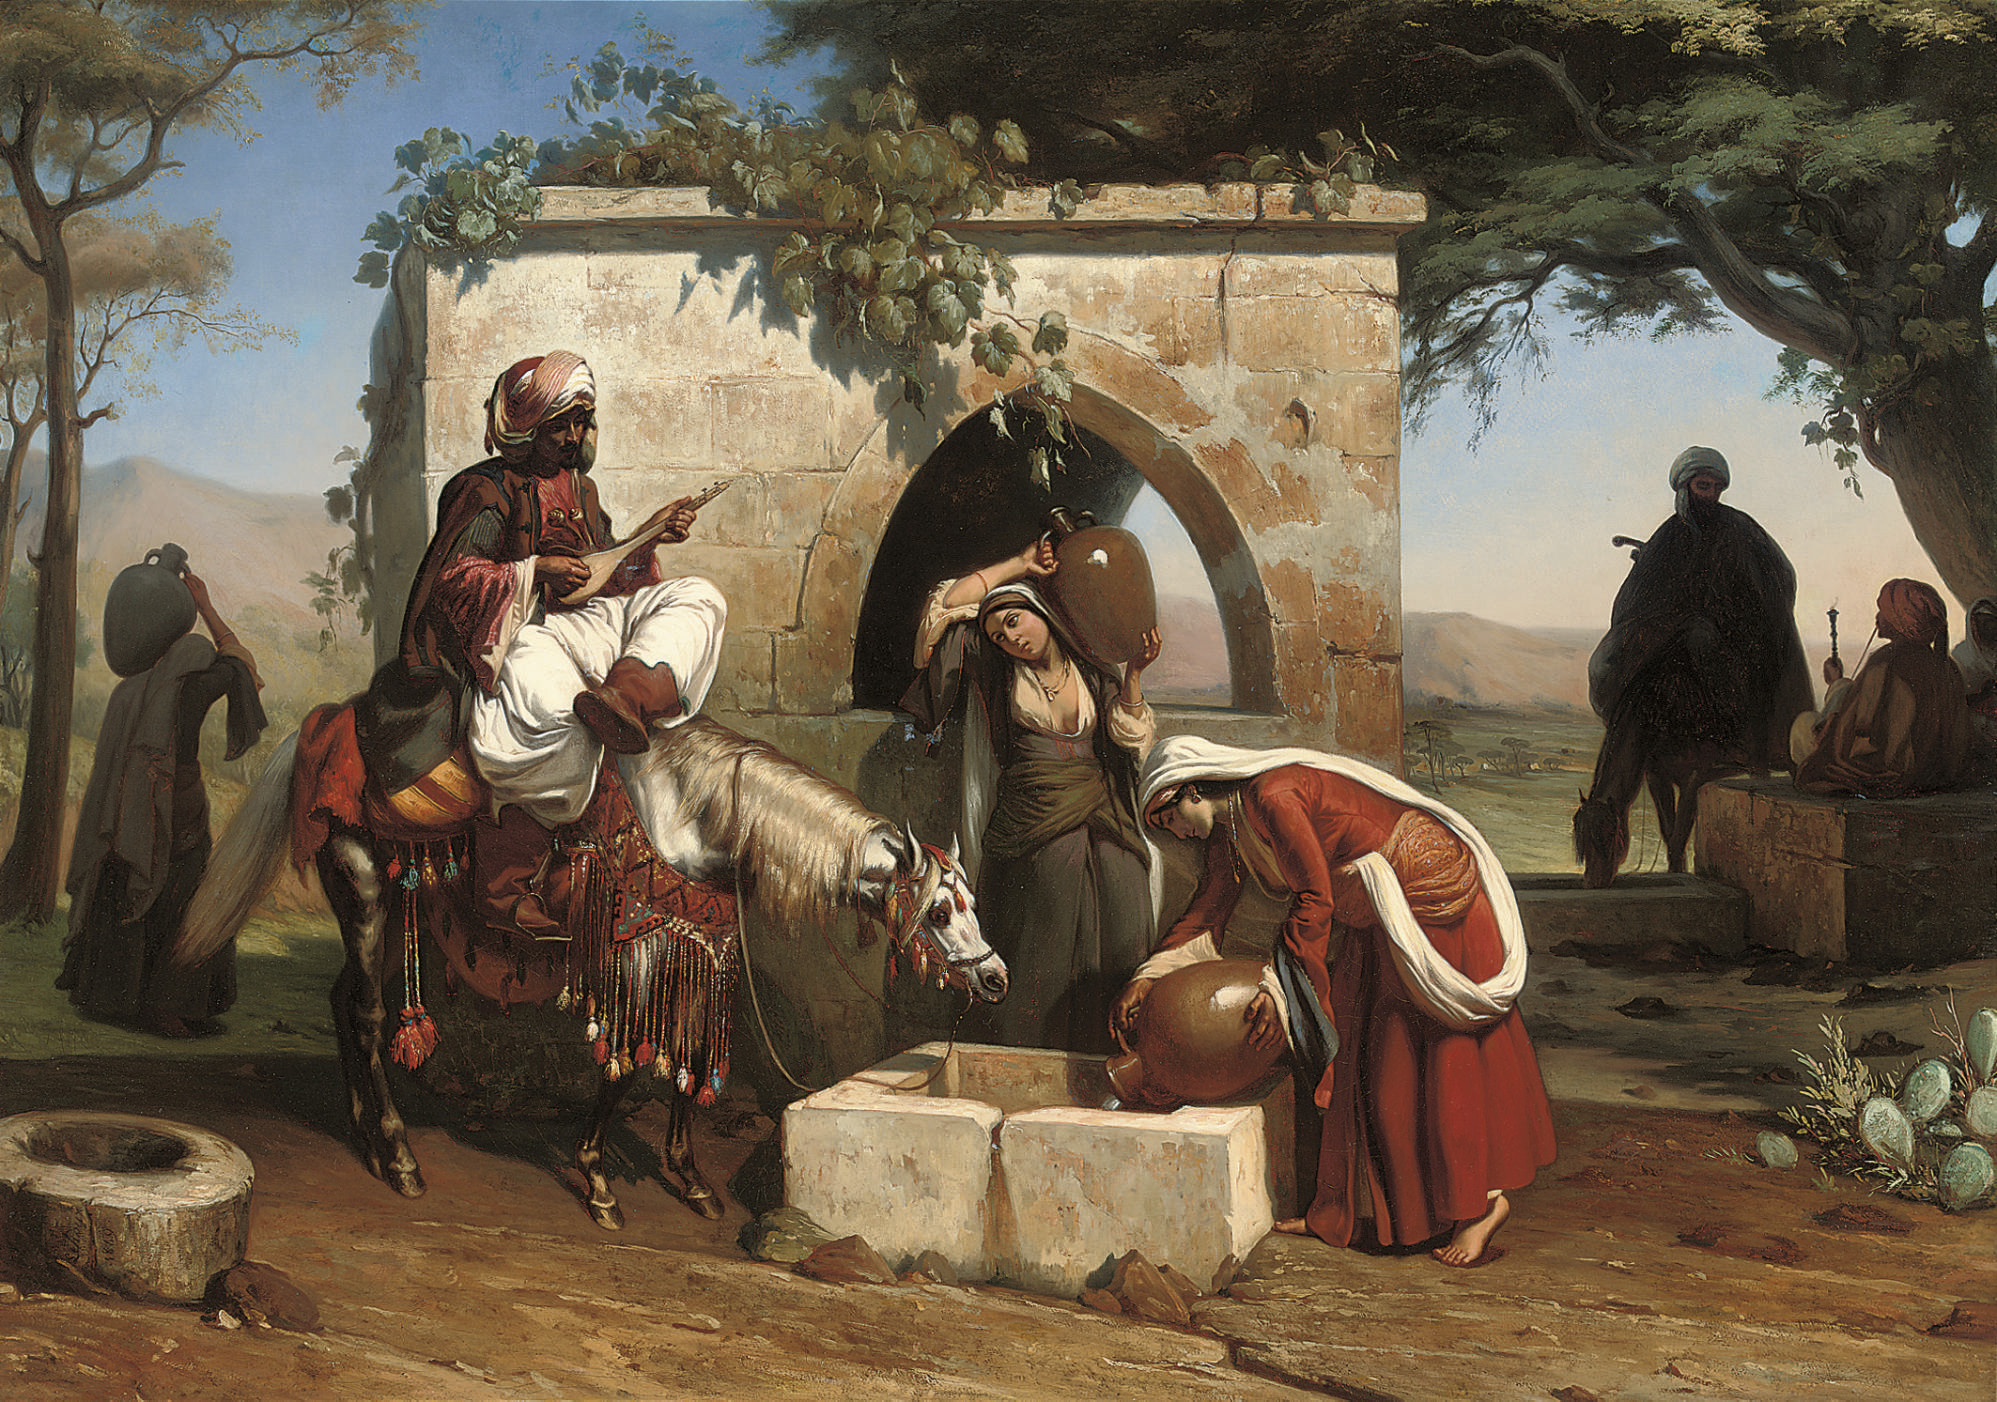 A serenade at the well